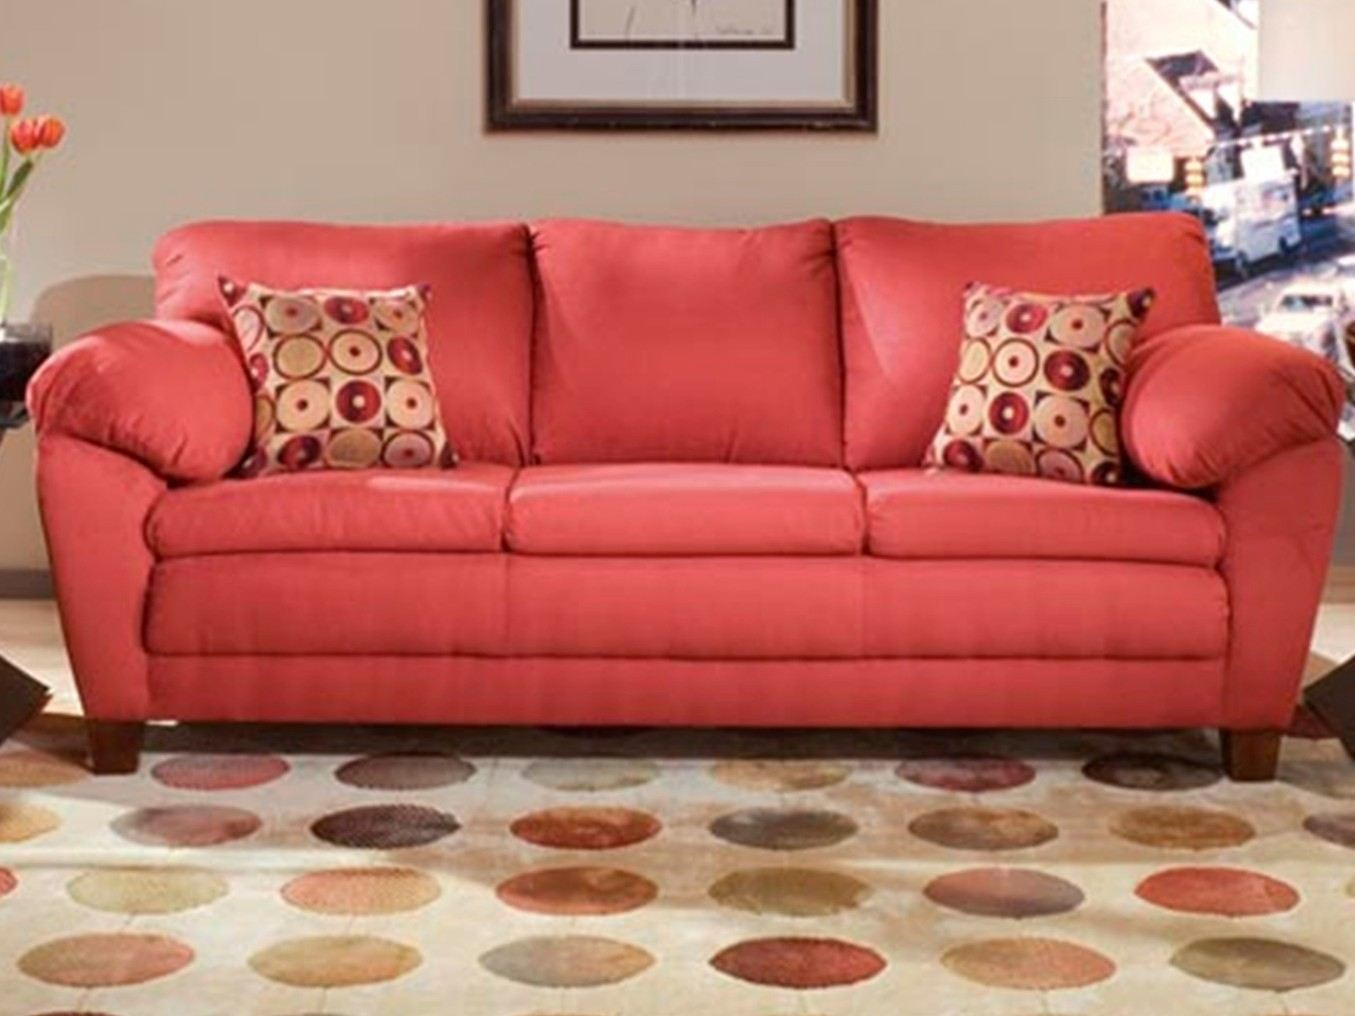 what-to-consider-before-getting-upholstery-done -curtainsnmore